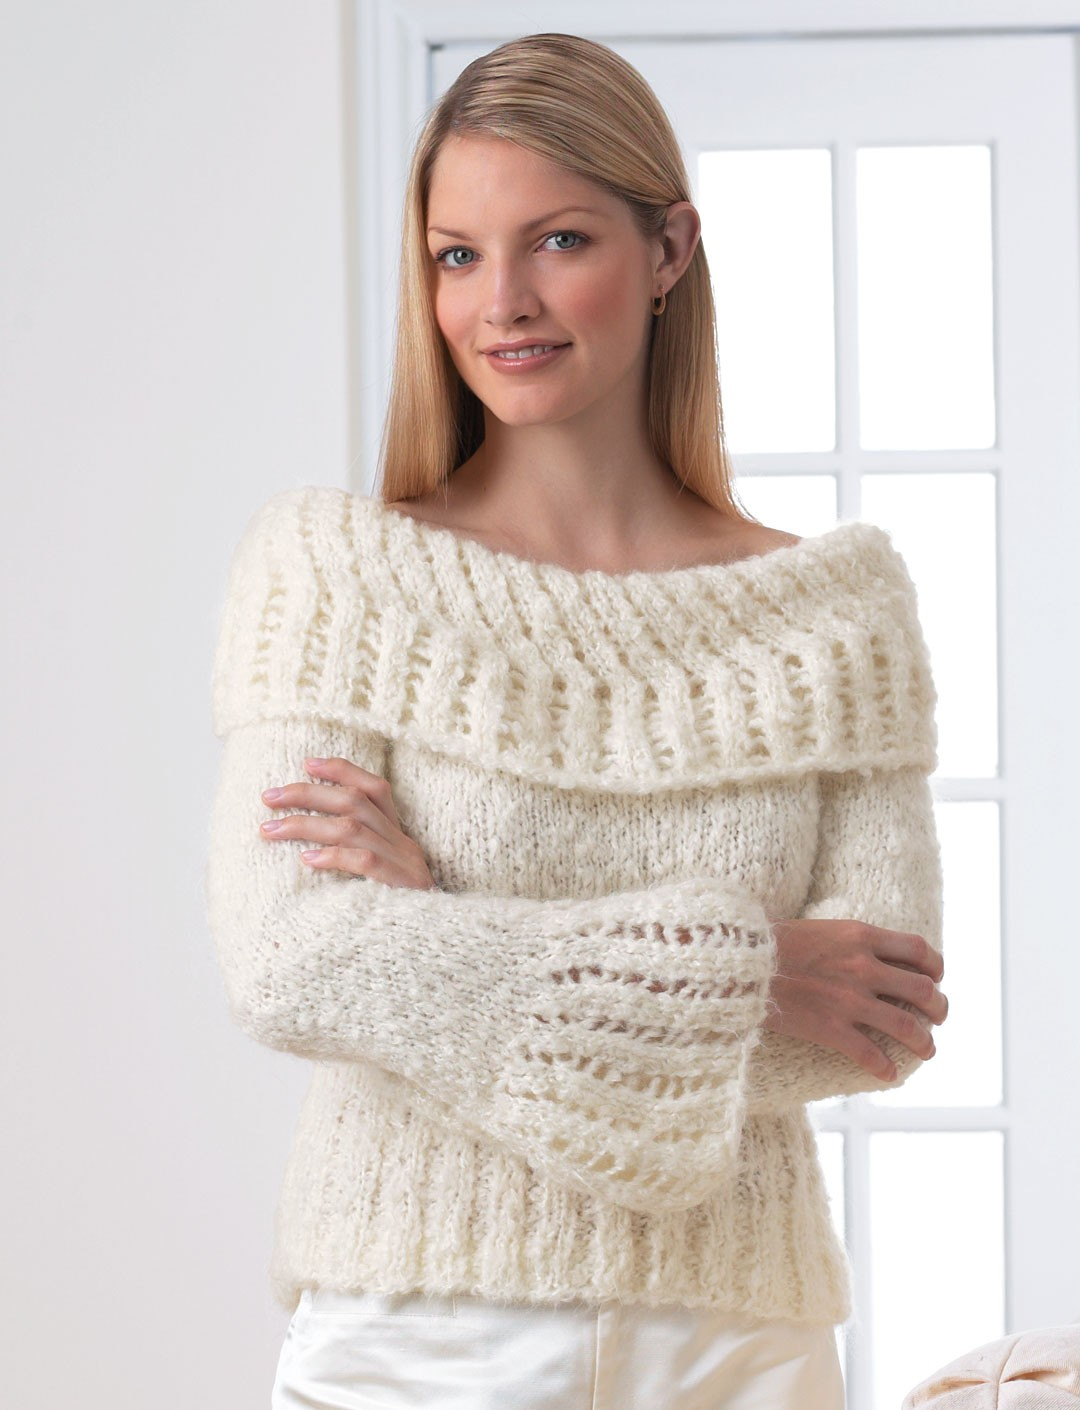 Knitted Jersey Patterns : Lacework Sweater - Patterns Yarnspirations